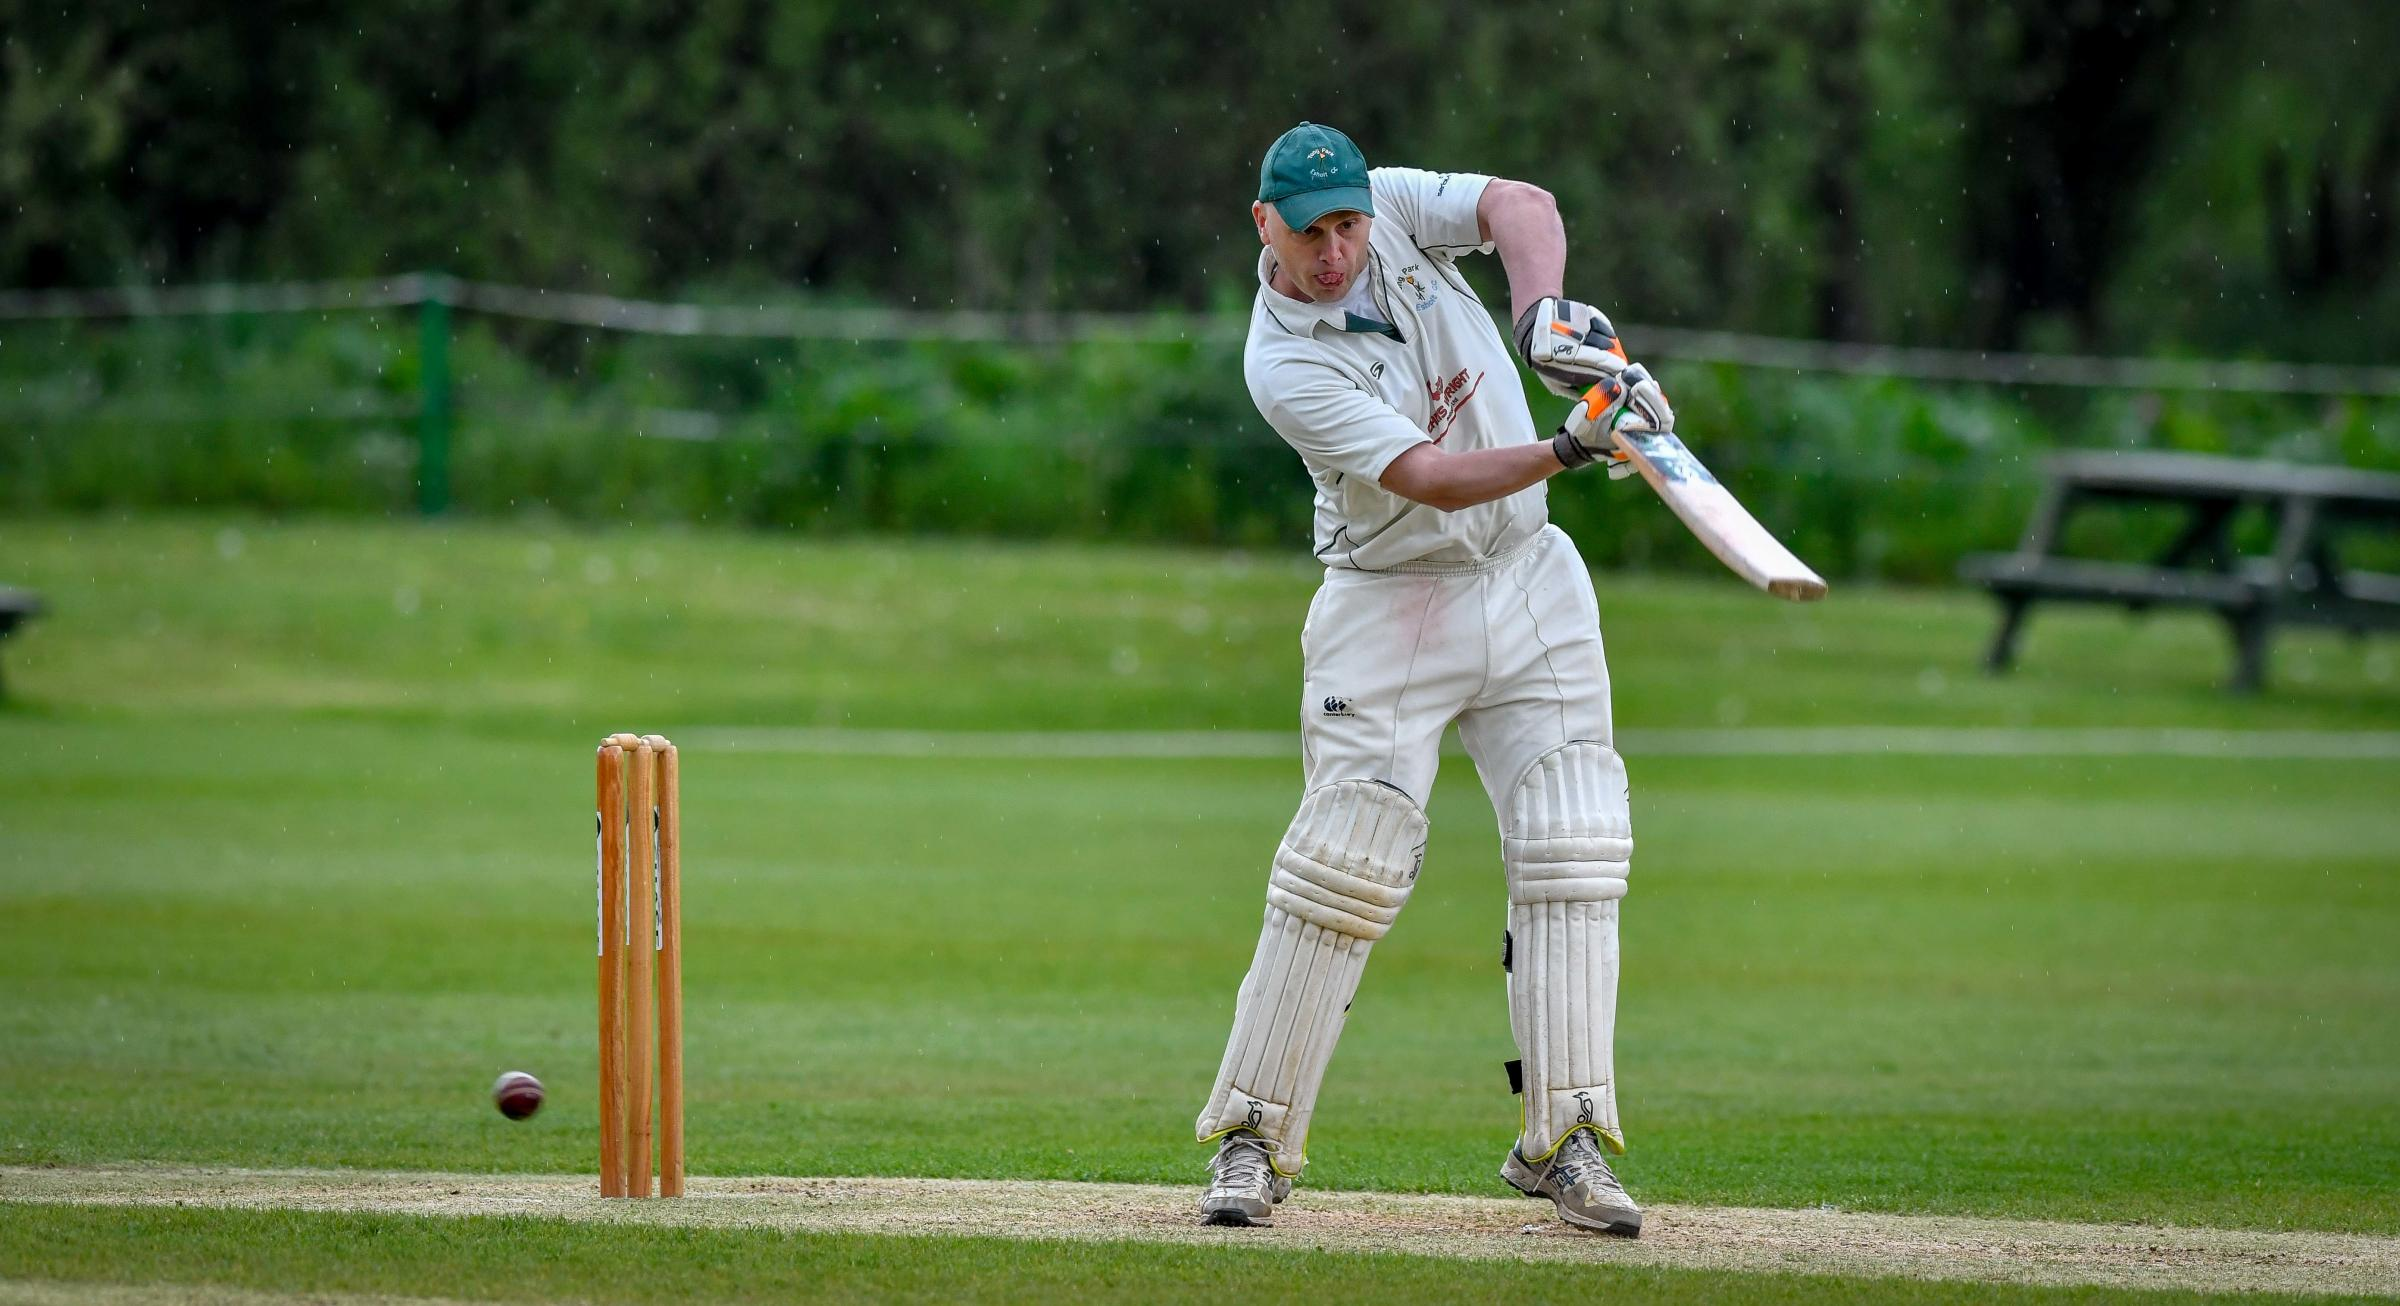 Daniel Groom bats for Tong Park Esholt against Saltaire on Saturday. Picture: Andy Garbutt